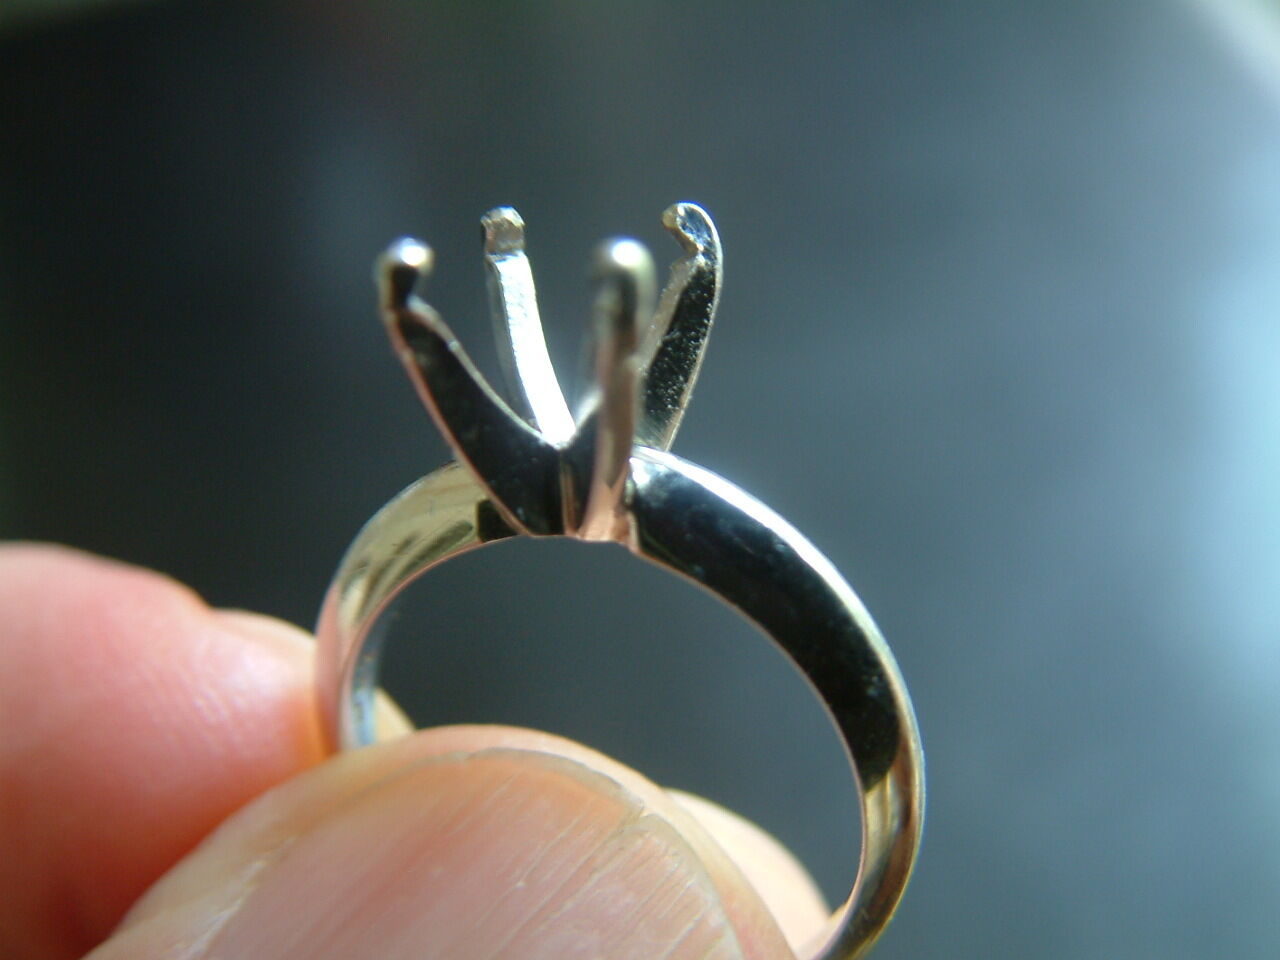 HEAVY PLATINUM 950  4 PRONG SOLITAIRE MOUNTING FOR 1.00 - 2.00 CARAT STONE  1900